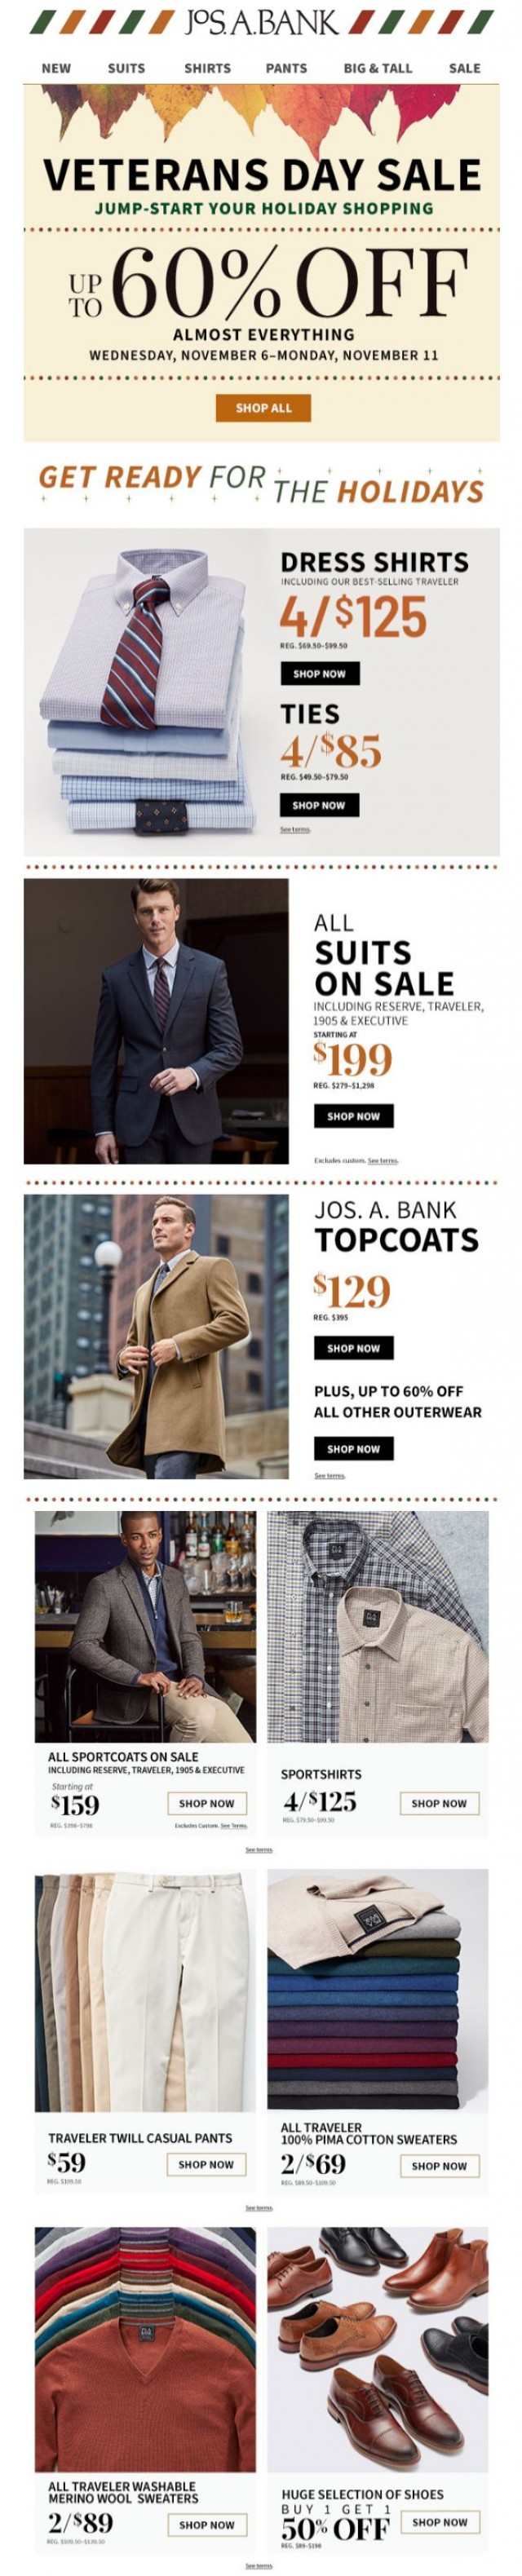 Coupon for: Jos. A. Bank - 4 for $125 Dress Shirts + 4 for $85 Ties + $199 Suits